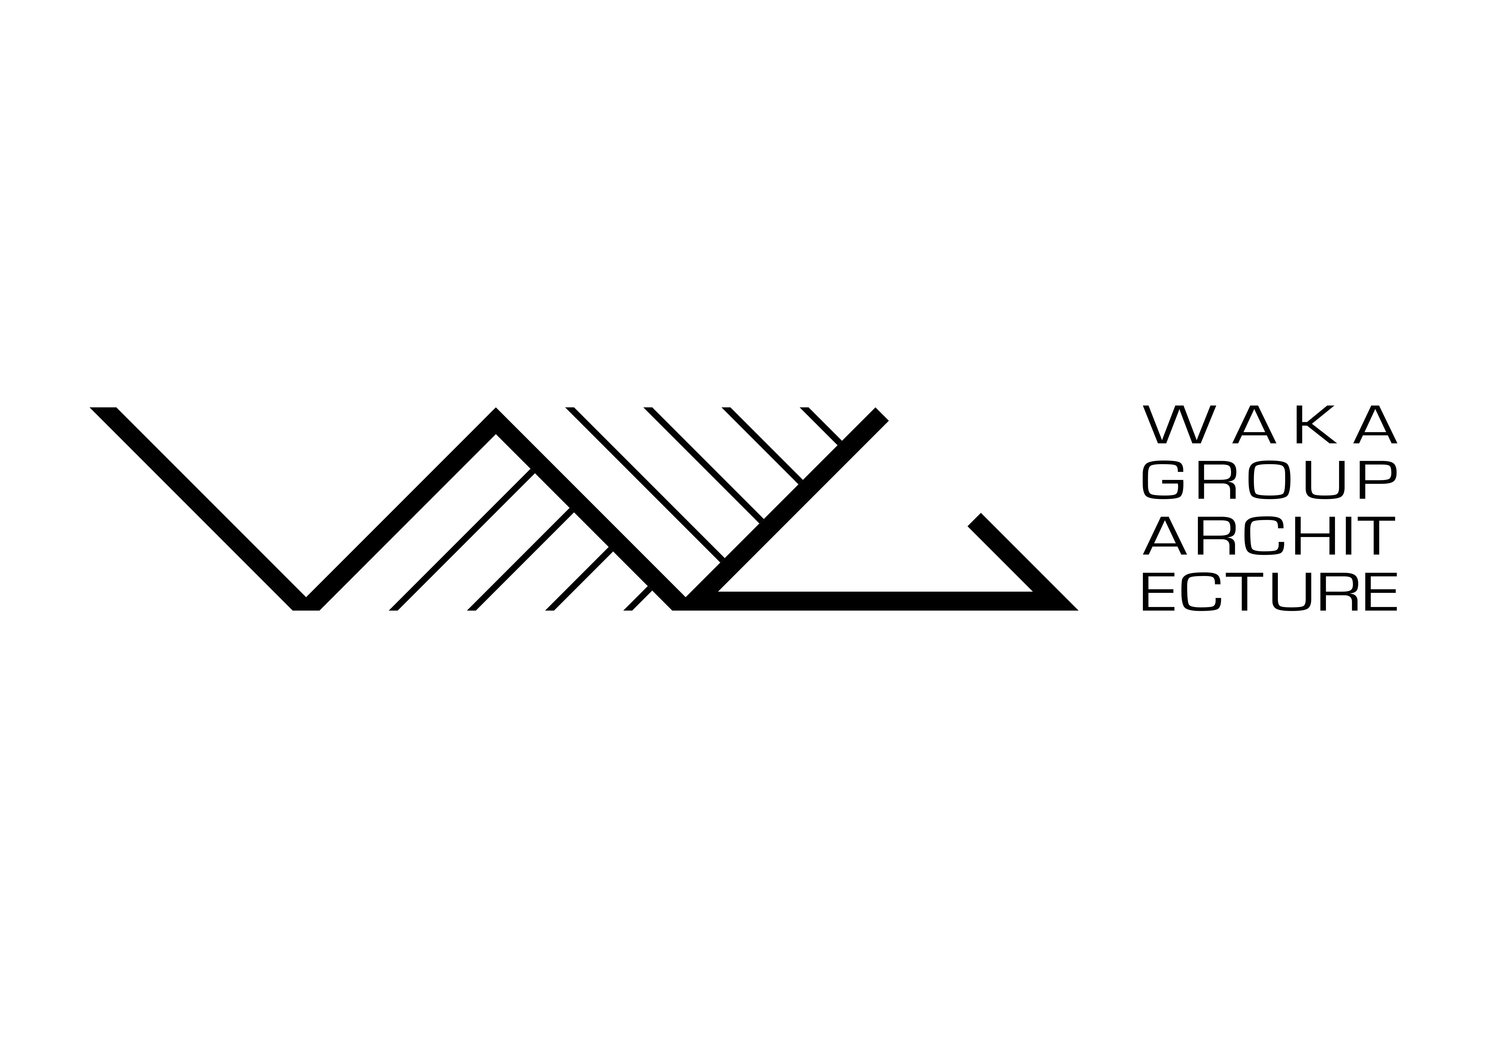 Waka Group Architecture